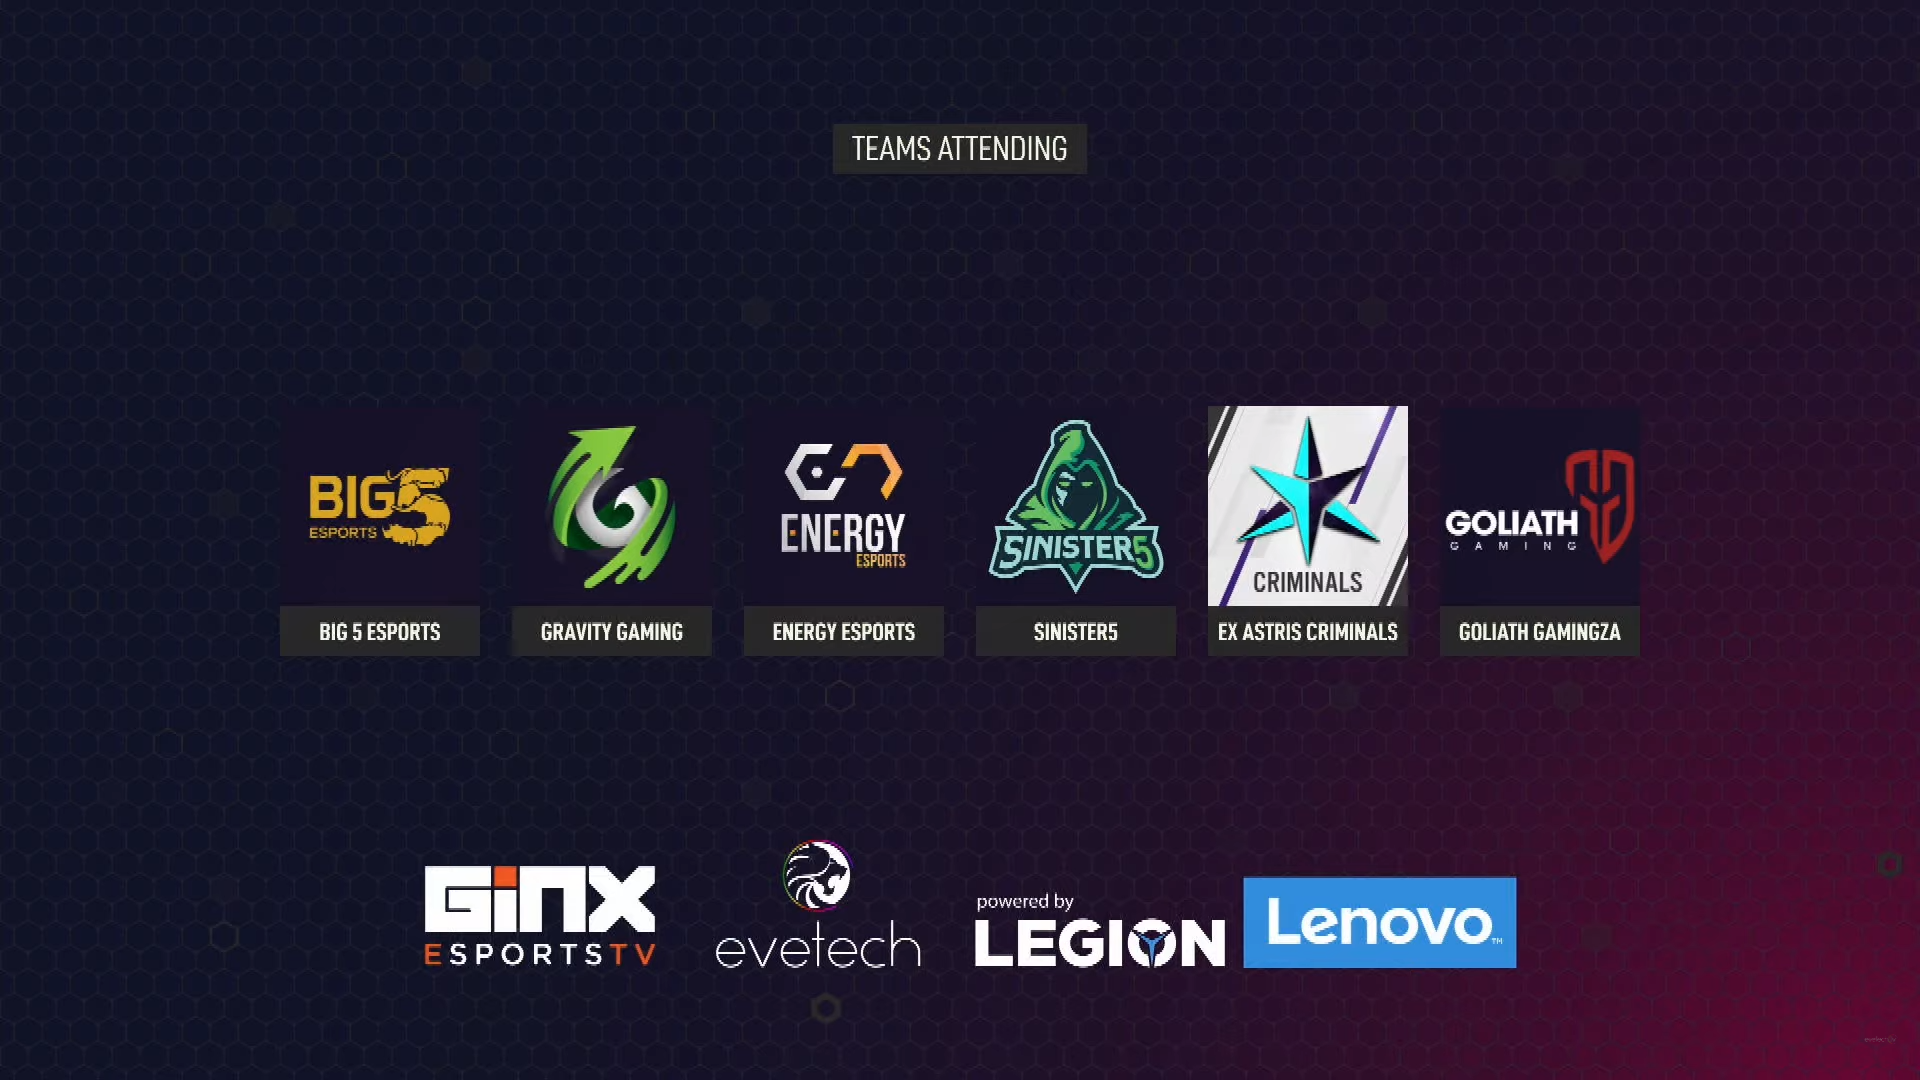 Wrapping up Evetech Champions League Season 3 - Esports Central